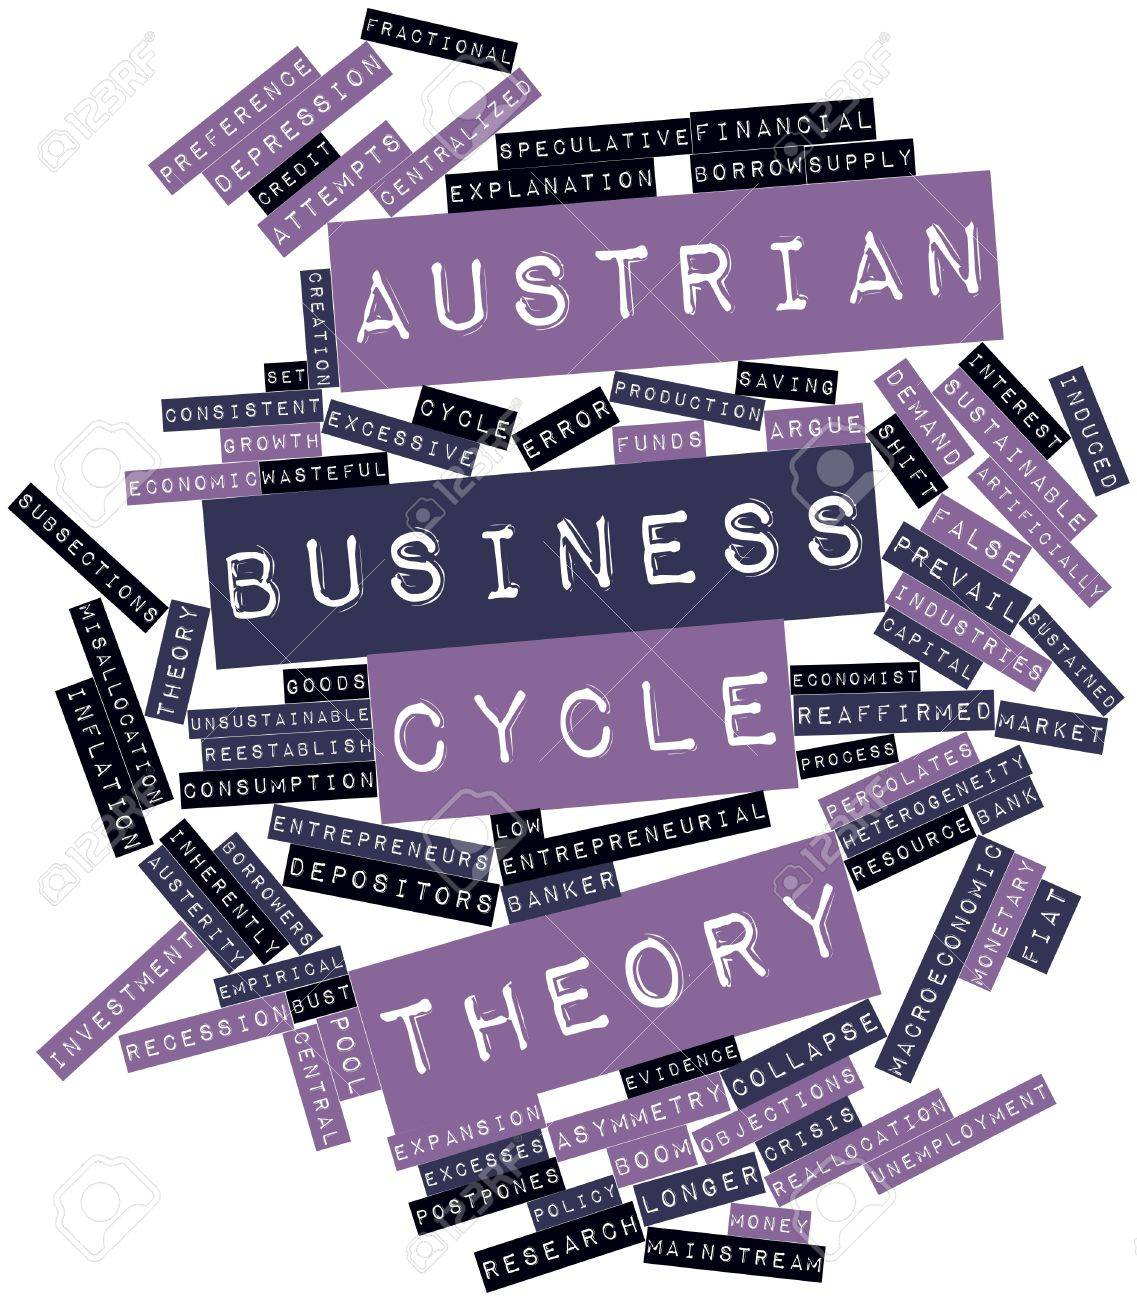 Abstract word cloud for Austrian business cycle theory with related tags and terms Stock Photo - 17147447